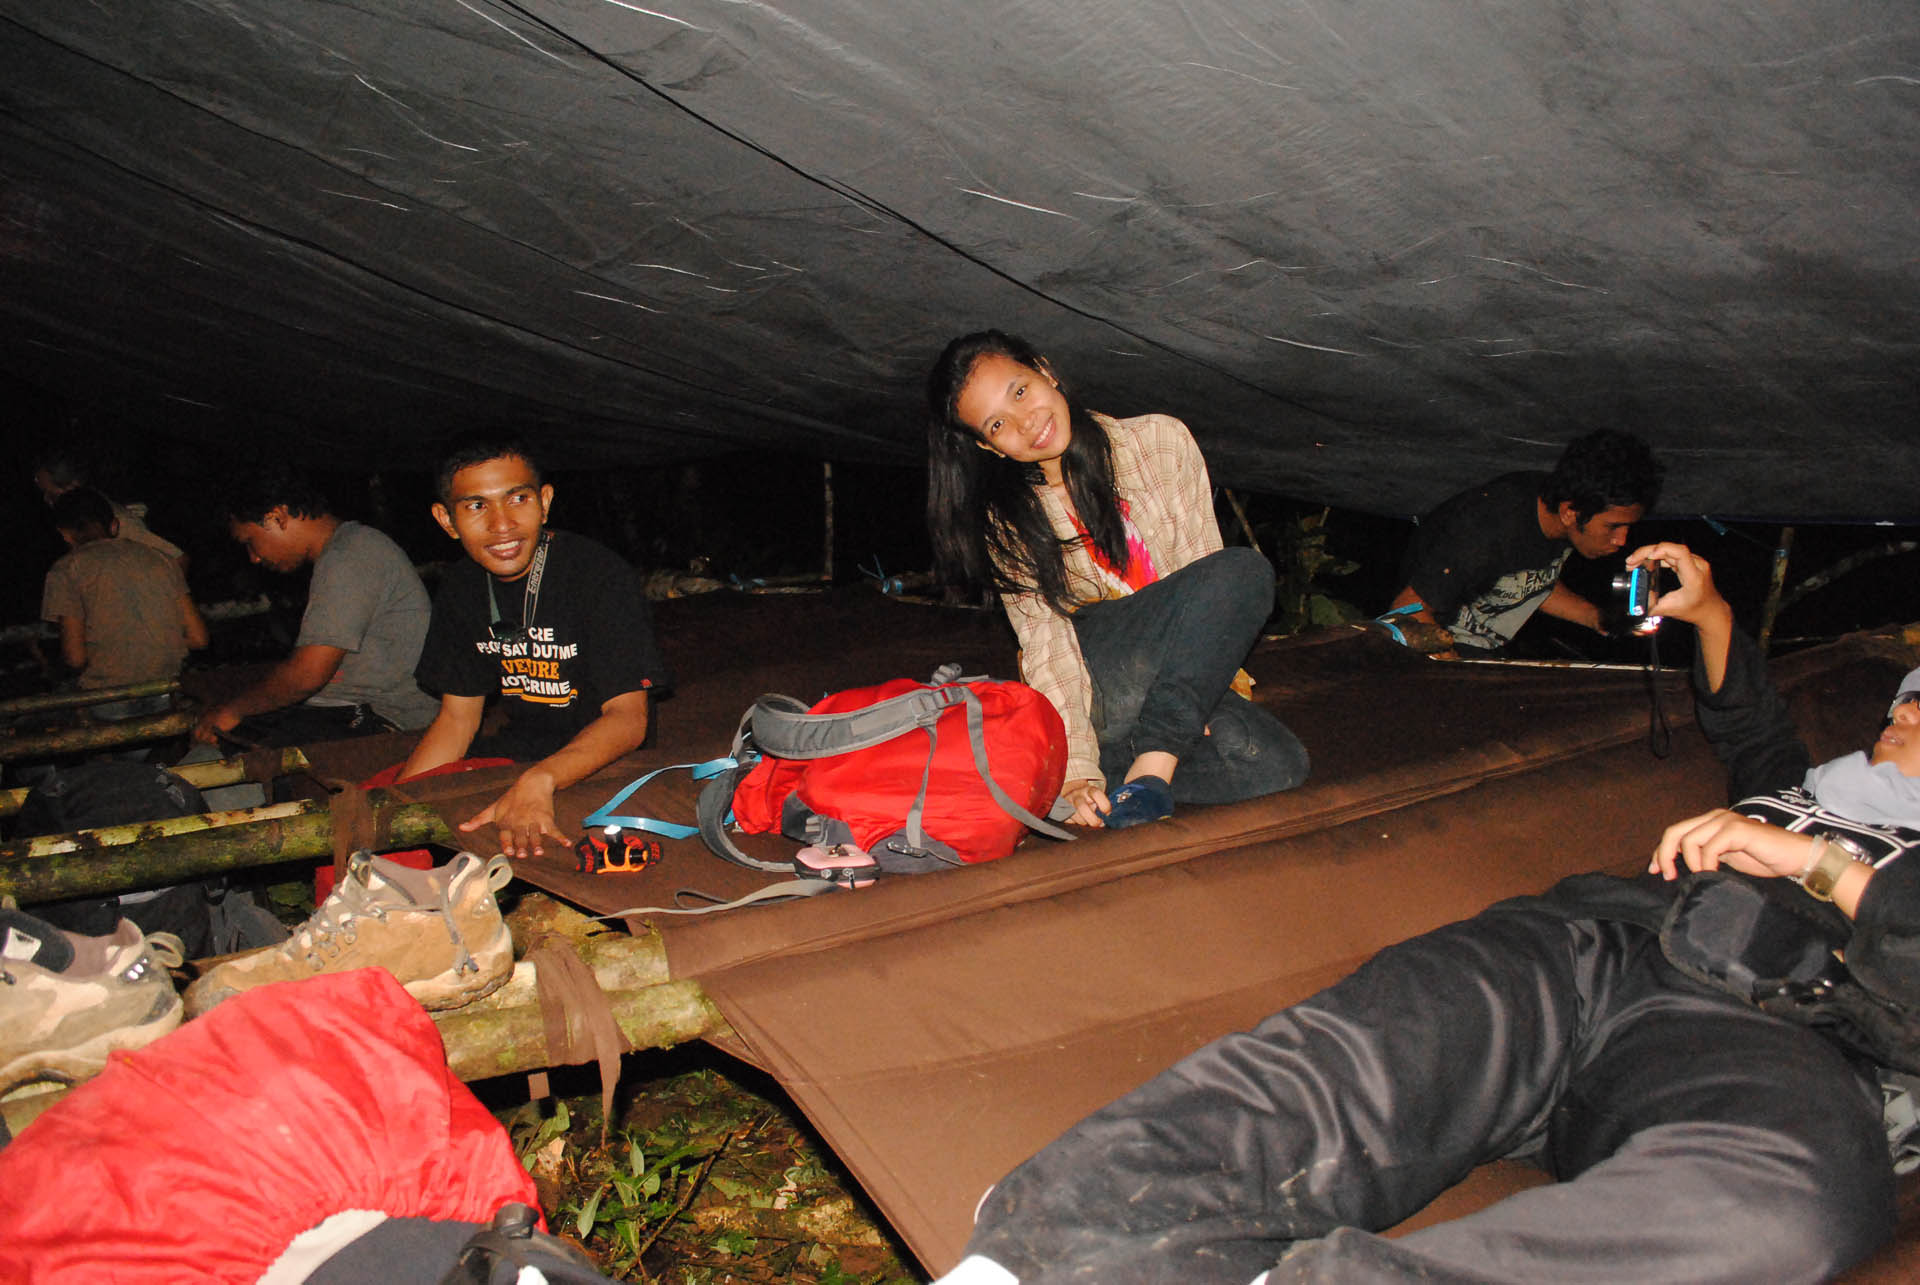 Night under Tarp